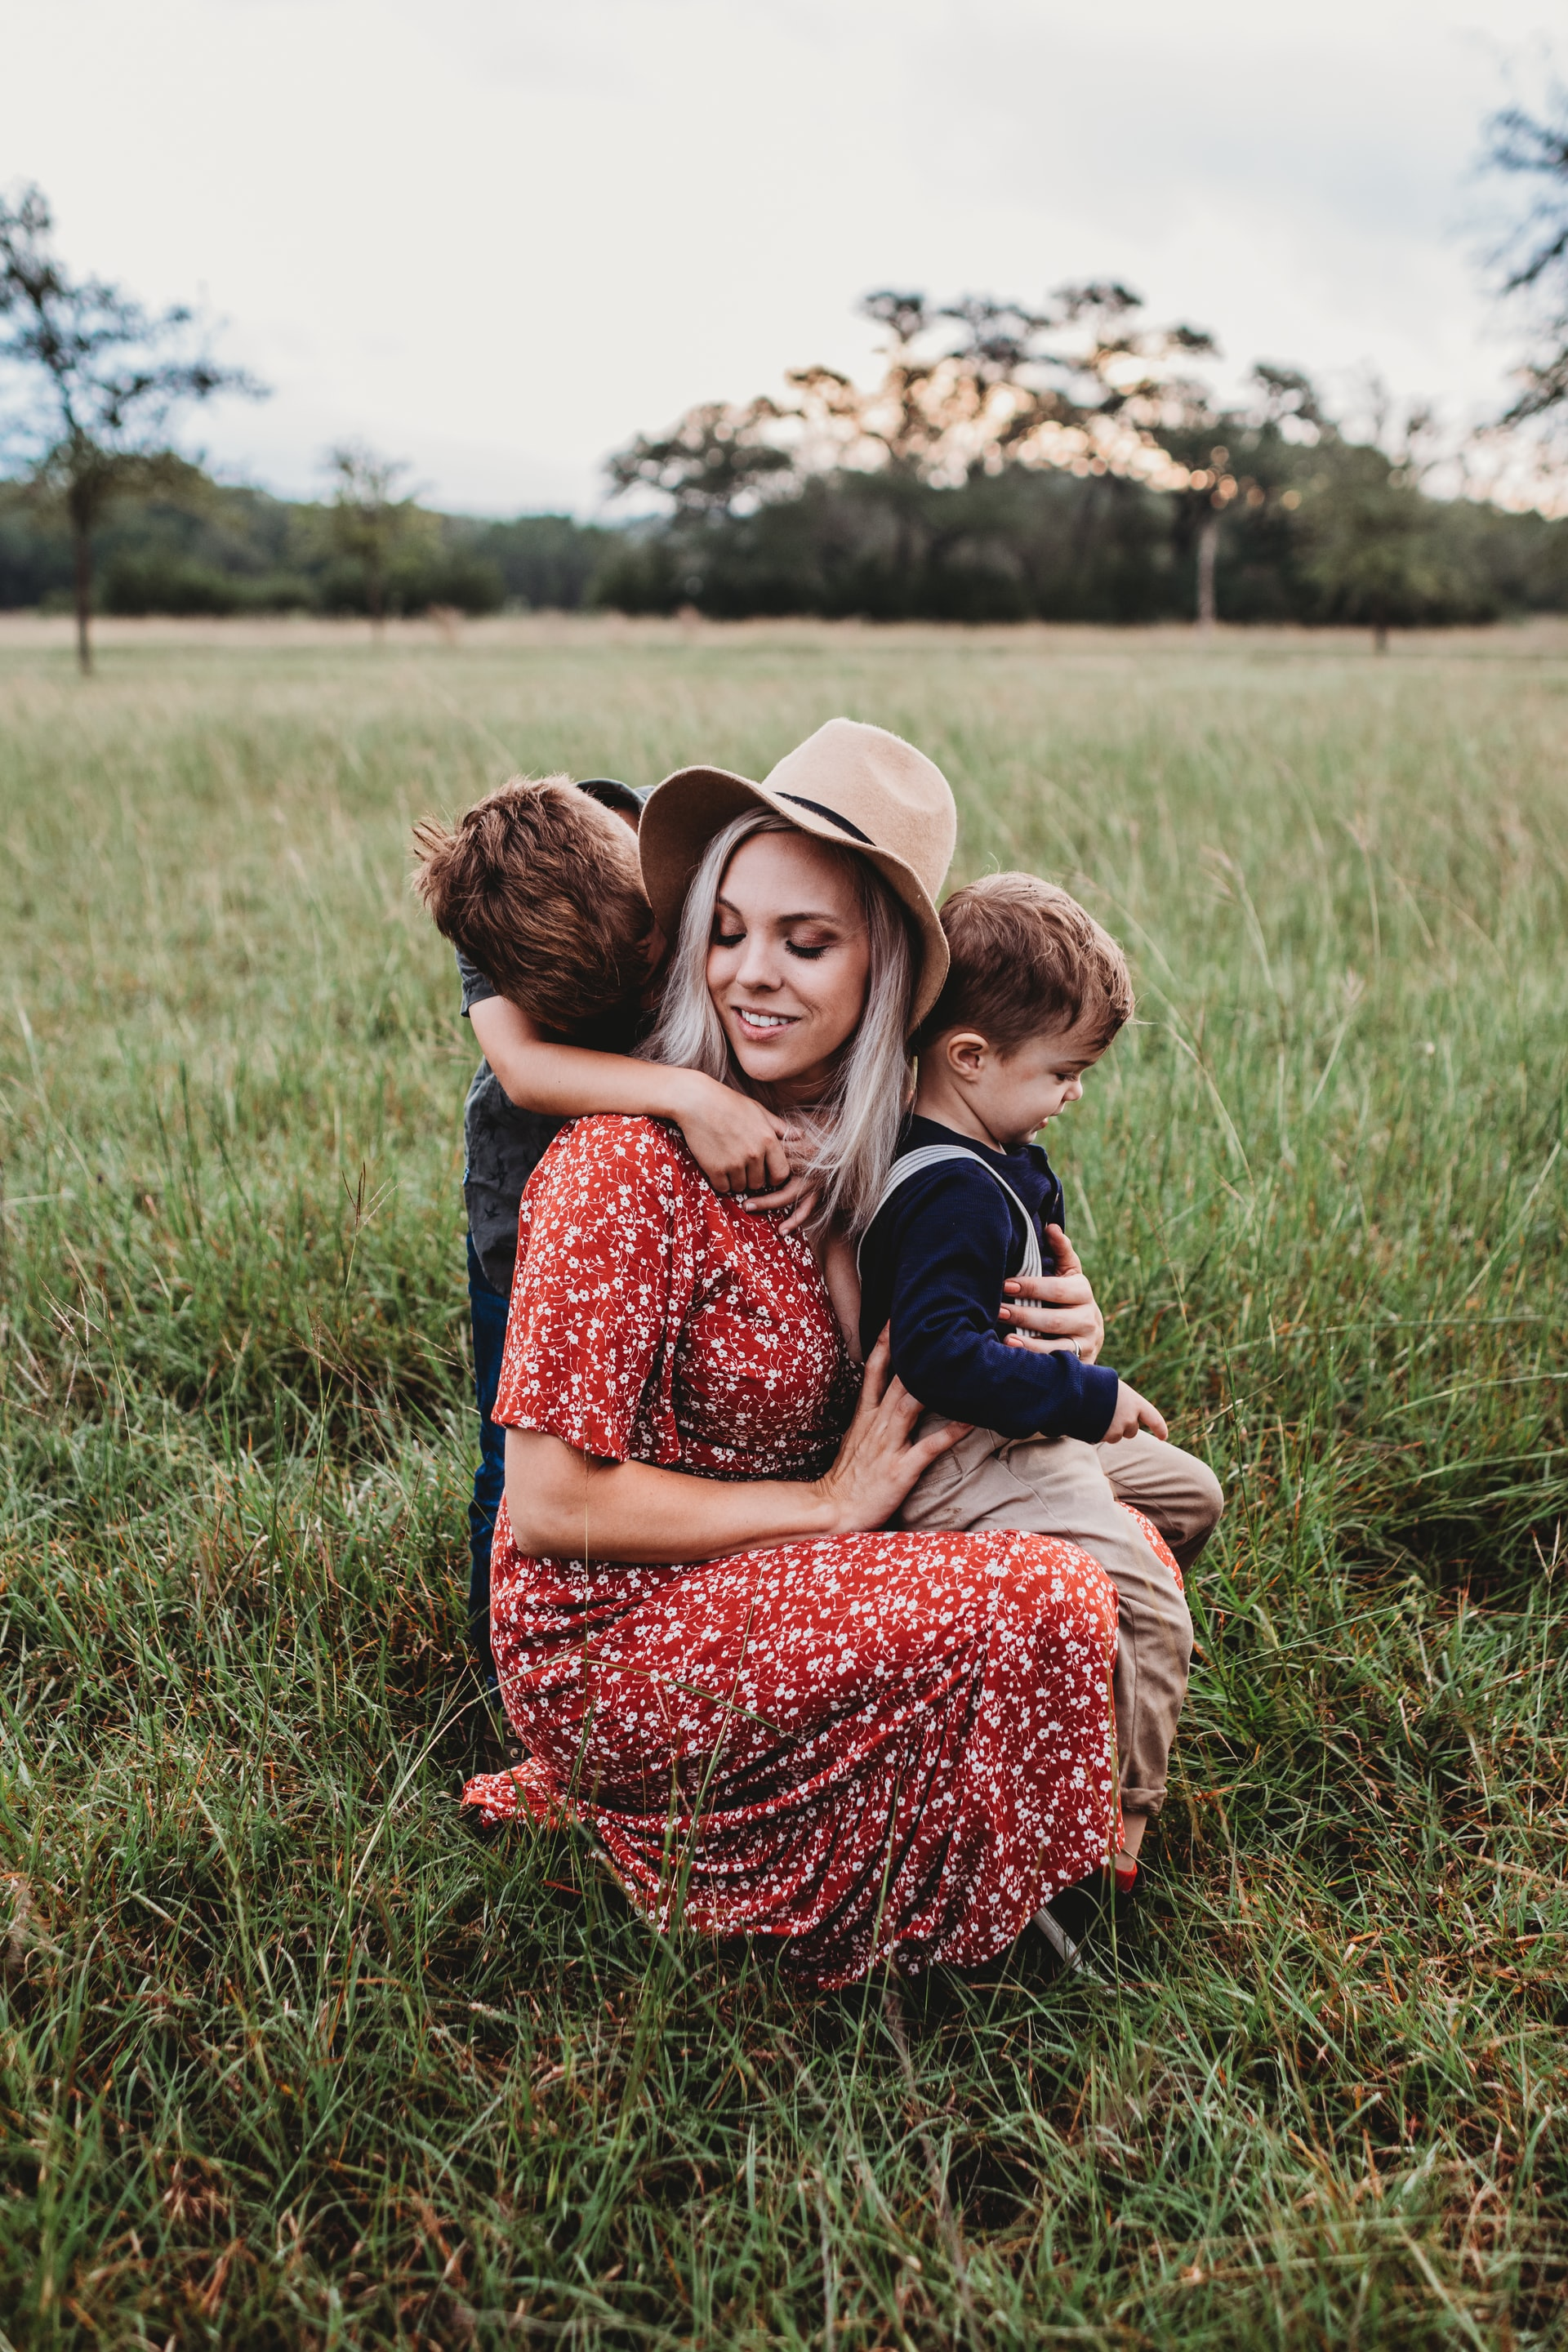 Mom in red dress with two young boys